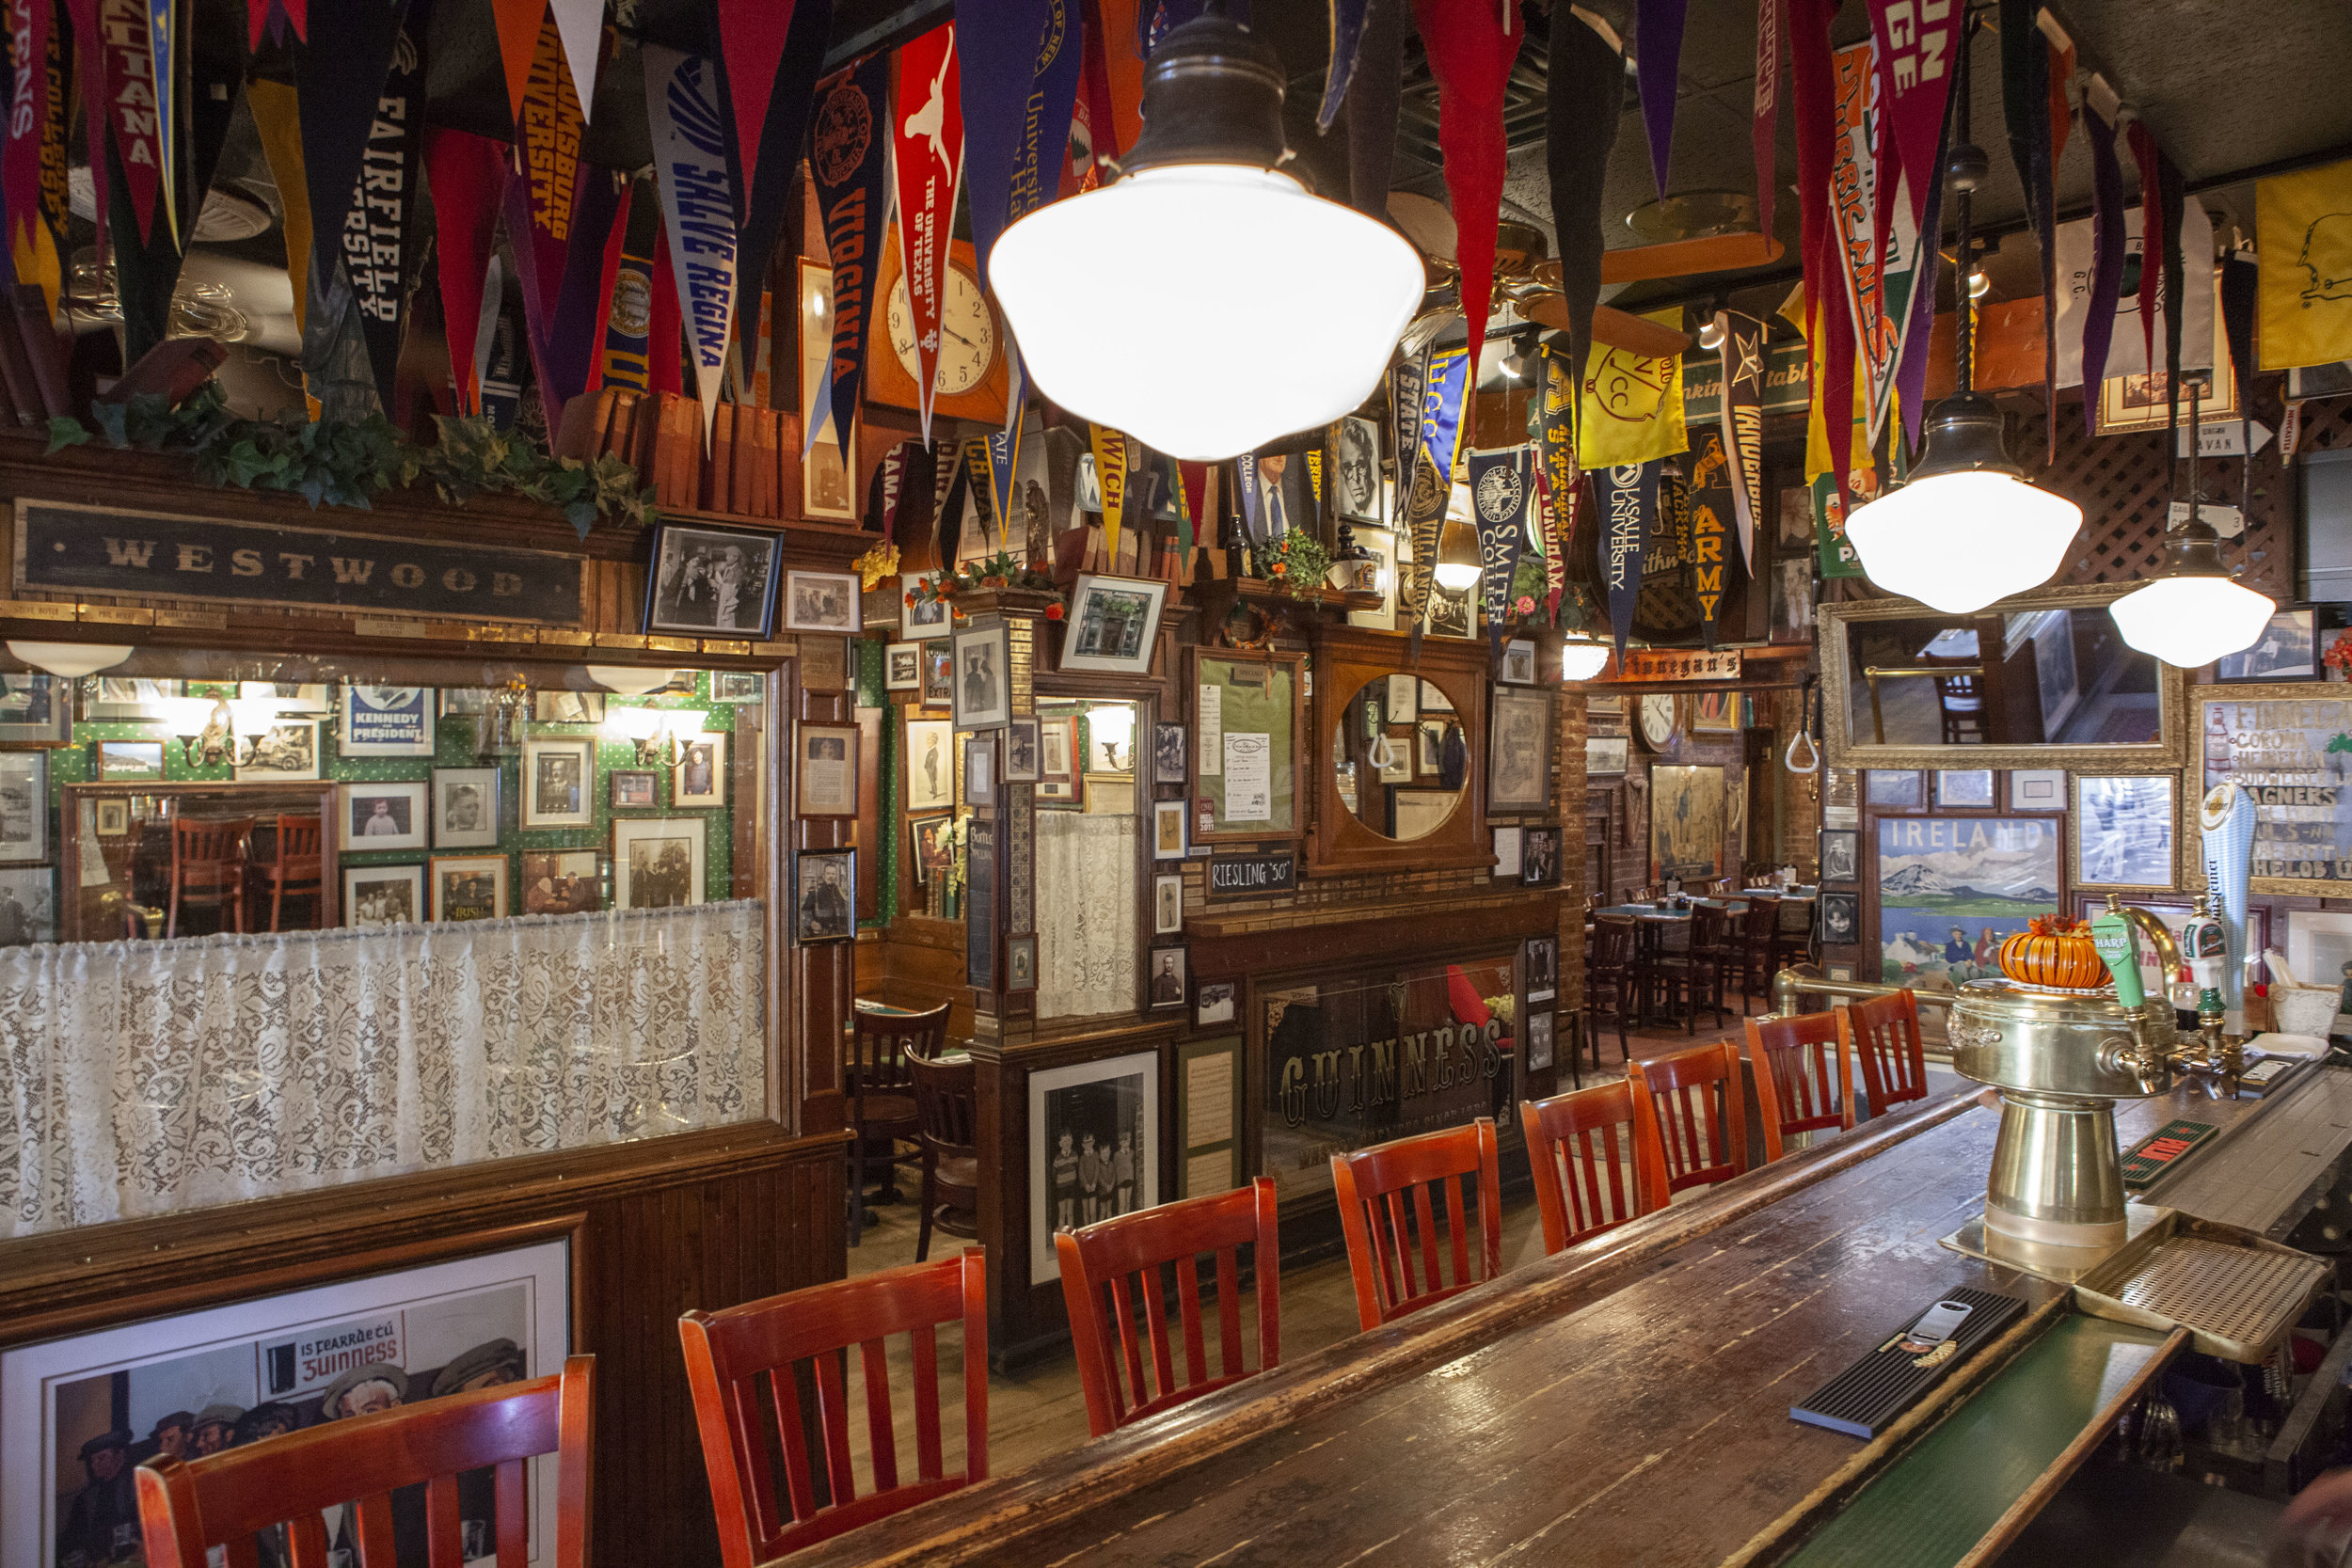 Westwood-PJ-Finnegan's-NJ-Bergen-bar-beer-food-pub.jpg